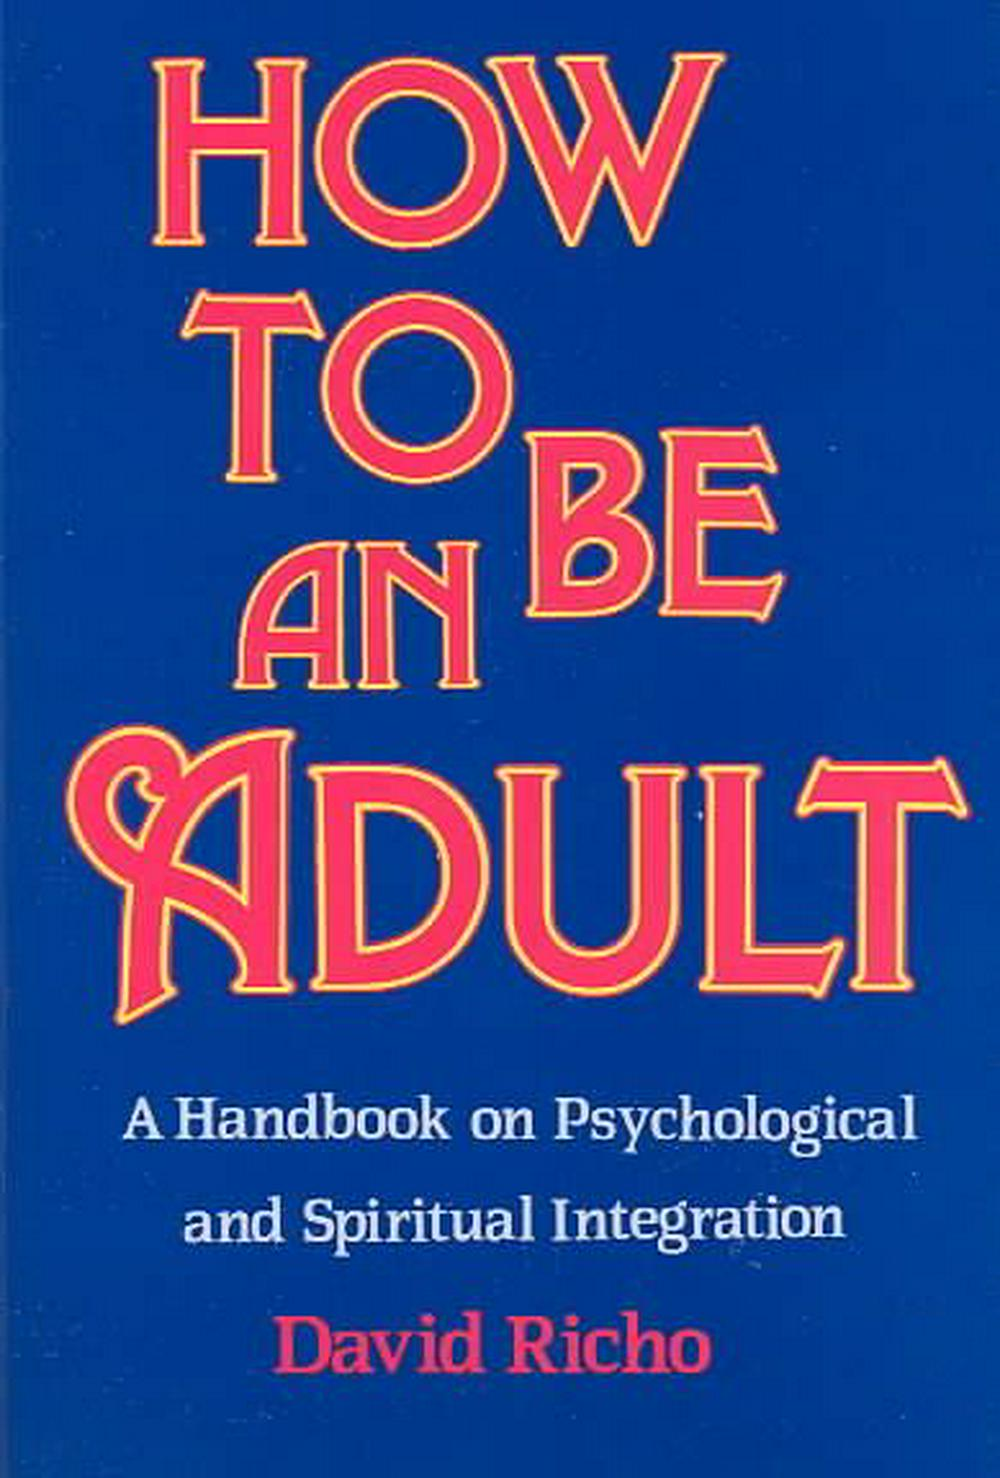 How to Be an Adult: A Handbook on Psychological and Spiritual Integration by David Richo, ISBN: 9780809132232